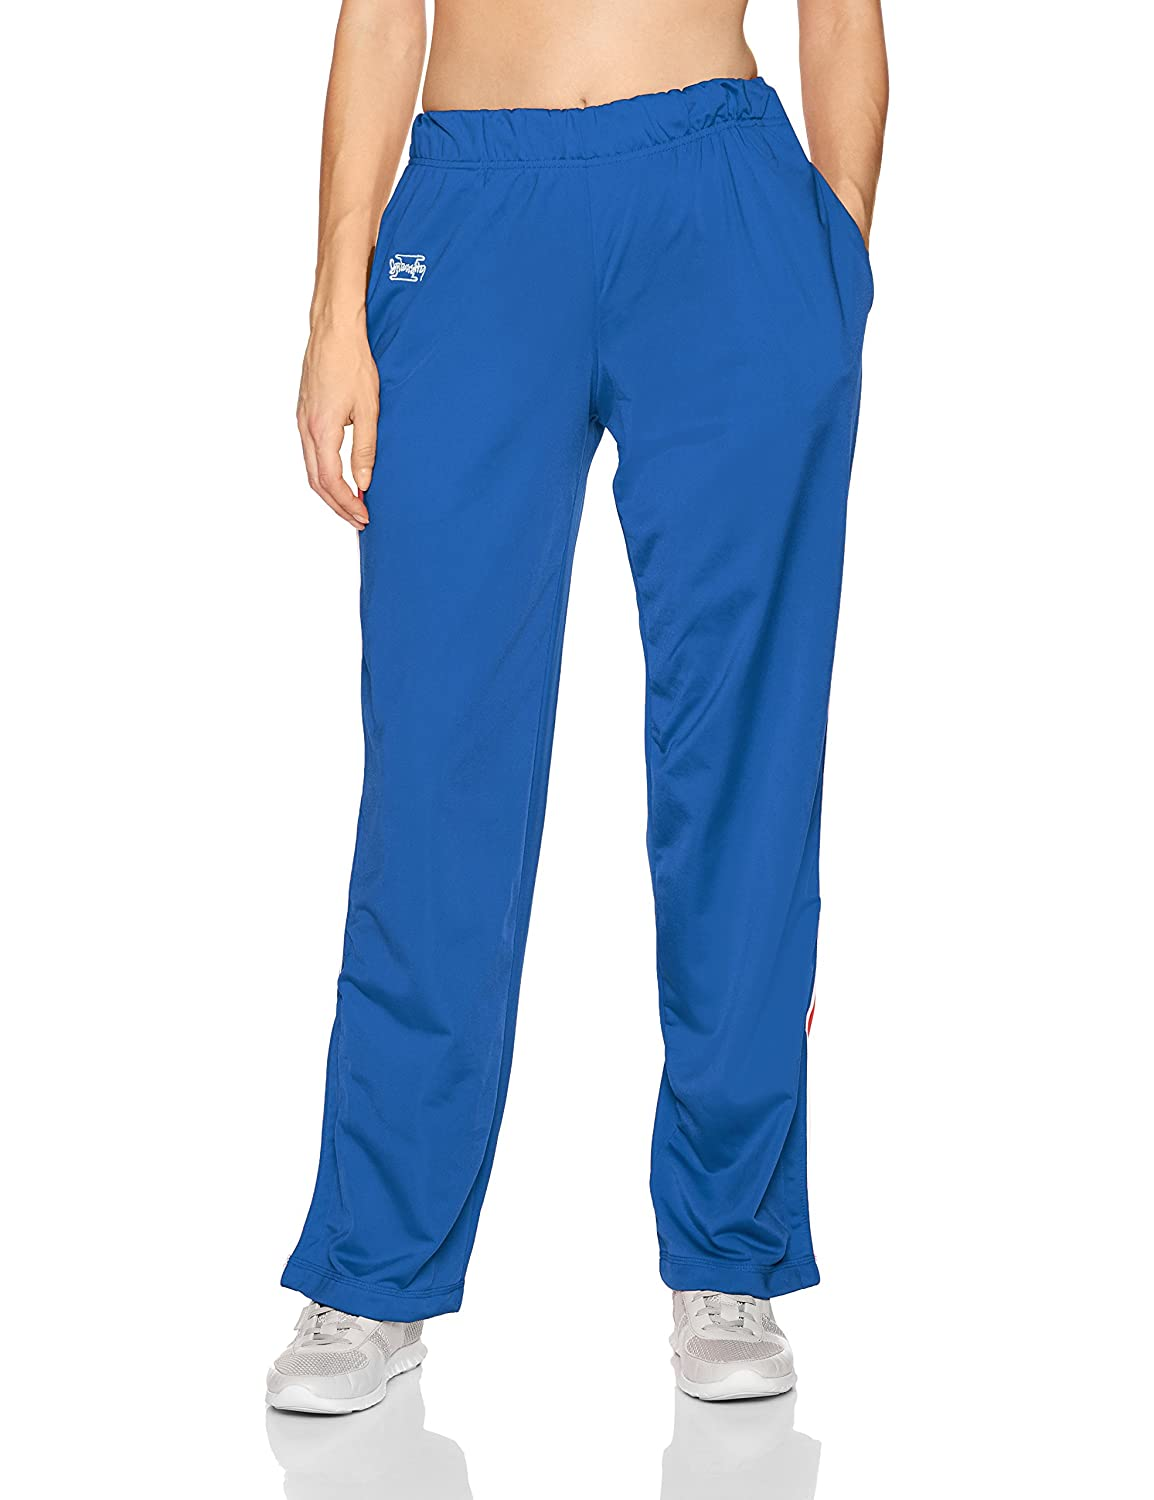 Intensity Womens Brushed Tricot Warmup Pant